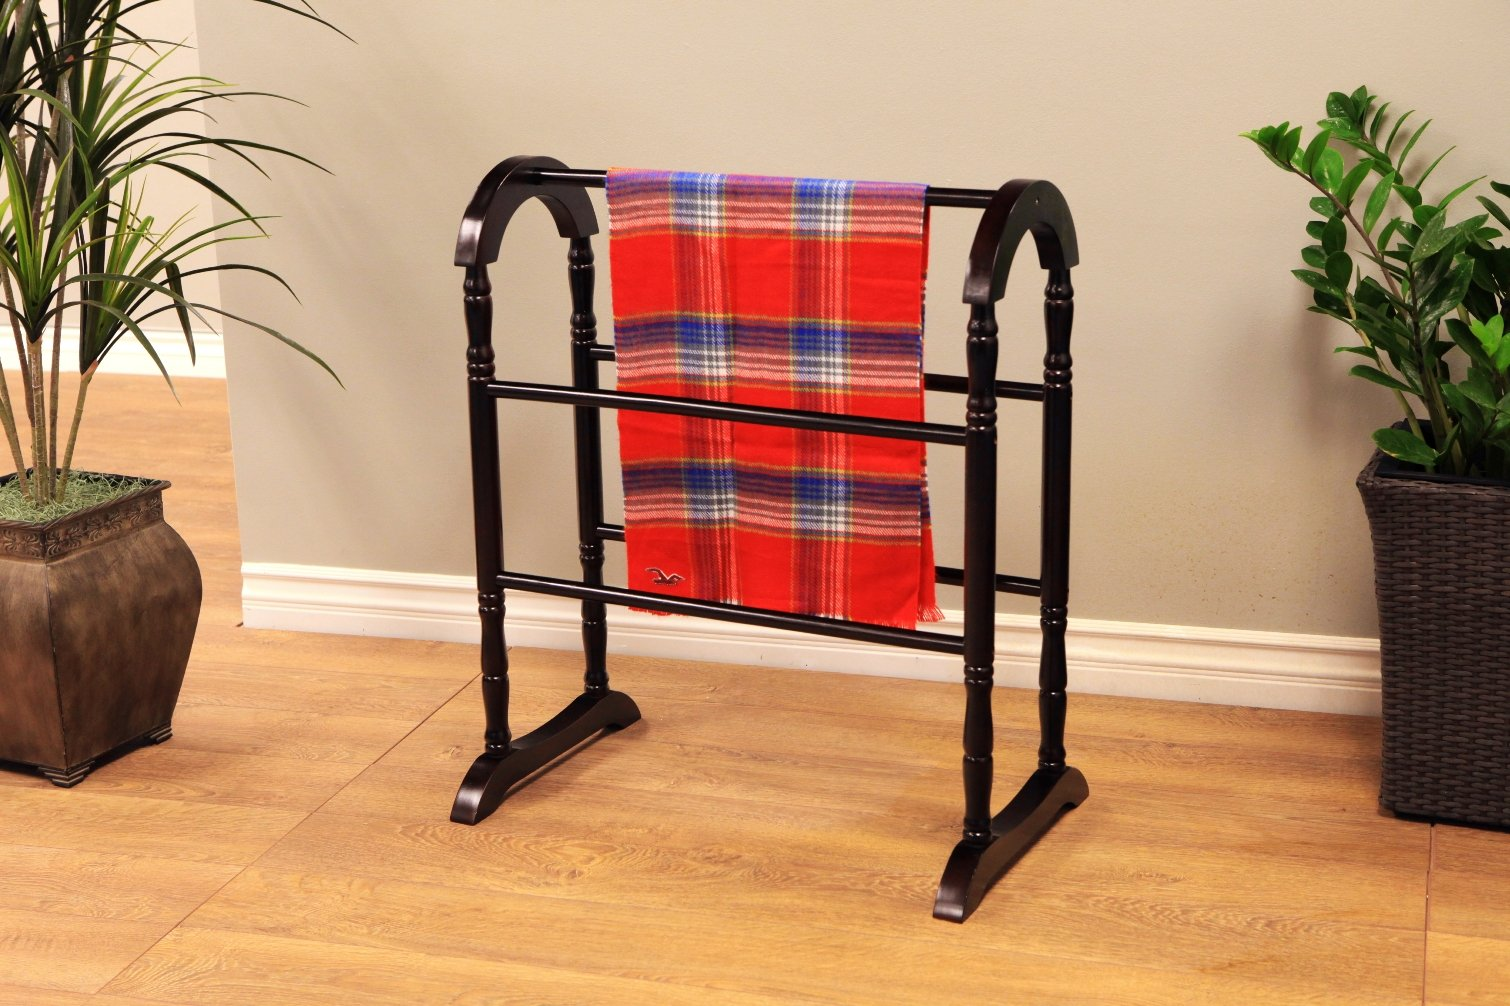 Frenchi Home Furnishing Quilt Rack, Espresso by Frenchi Home Furnishing (Image #4)